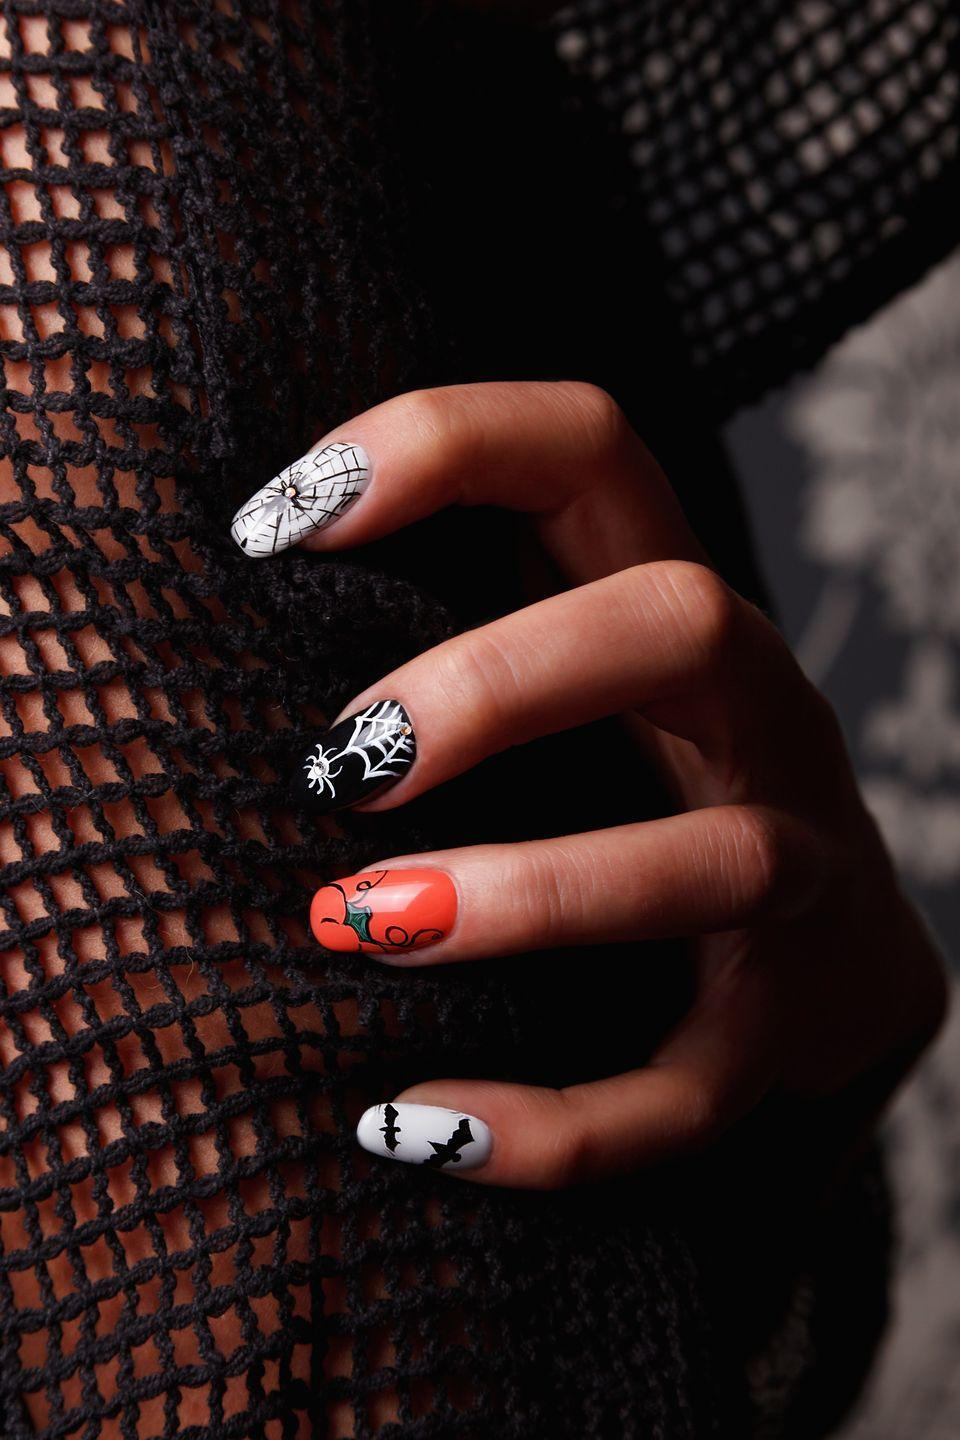 """<p>Spin a stringy spiderweb on your fingers with the help of some super easy nail decals that come in different sizes—and include creepy crawly spiders! </p><p><a class=""""link rapid-noclick-resp"""" href=""""https://go.redirectingat.com?id=74968X1596630&url=https%3A%2F%2Fwww.etsy.com%2Flisting%2F540930274%2Fhalloween-nail-art-white-spiders-spider&sref=https%3A%2F%2Fwww.oprahdaily.com%2Fbeauty%2Fskin-makeup%2Fg33239588%2Fhalloween-nail-ideas%2F"""" rel=""""nofollow noopener"""" target=""""_blank"""" data-ylk=""""slk:SHOP SPIDERWEB DECAL"""">SHOP SPIDERWEB DECAL </a></p>"""